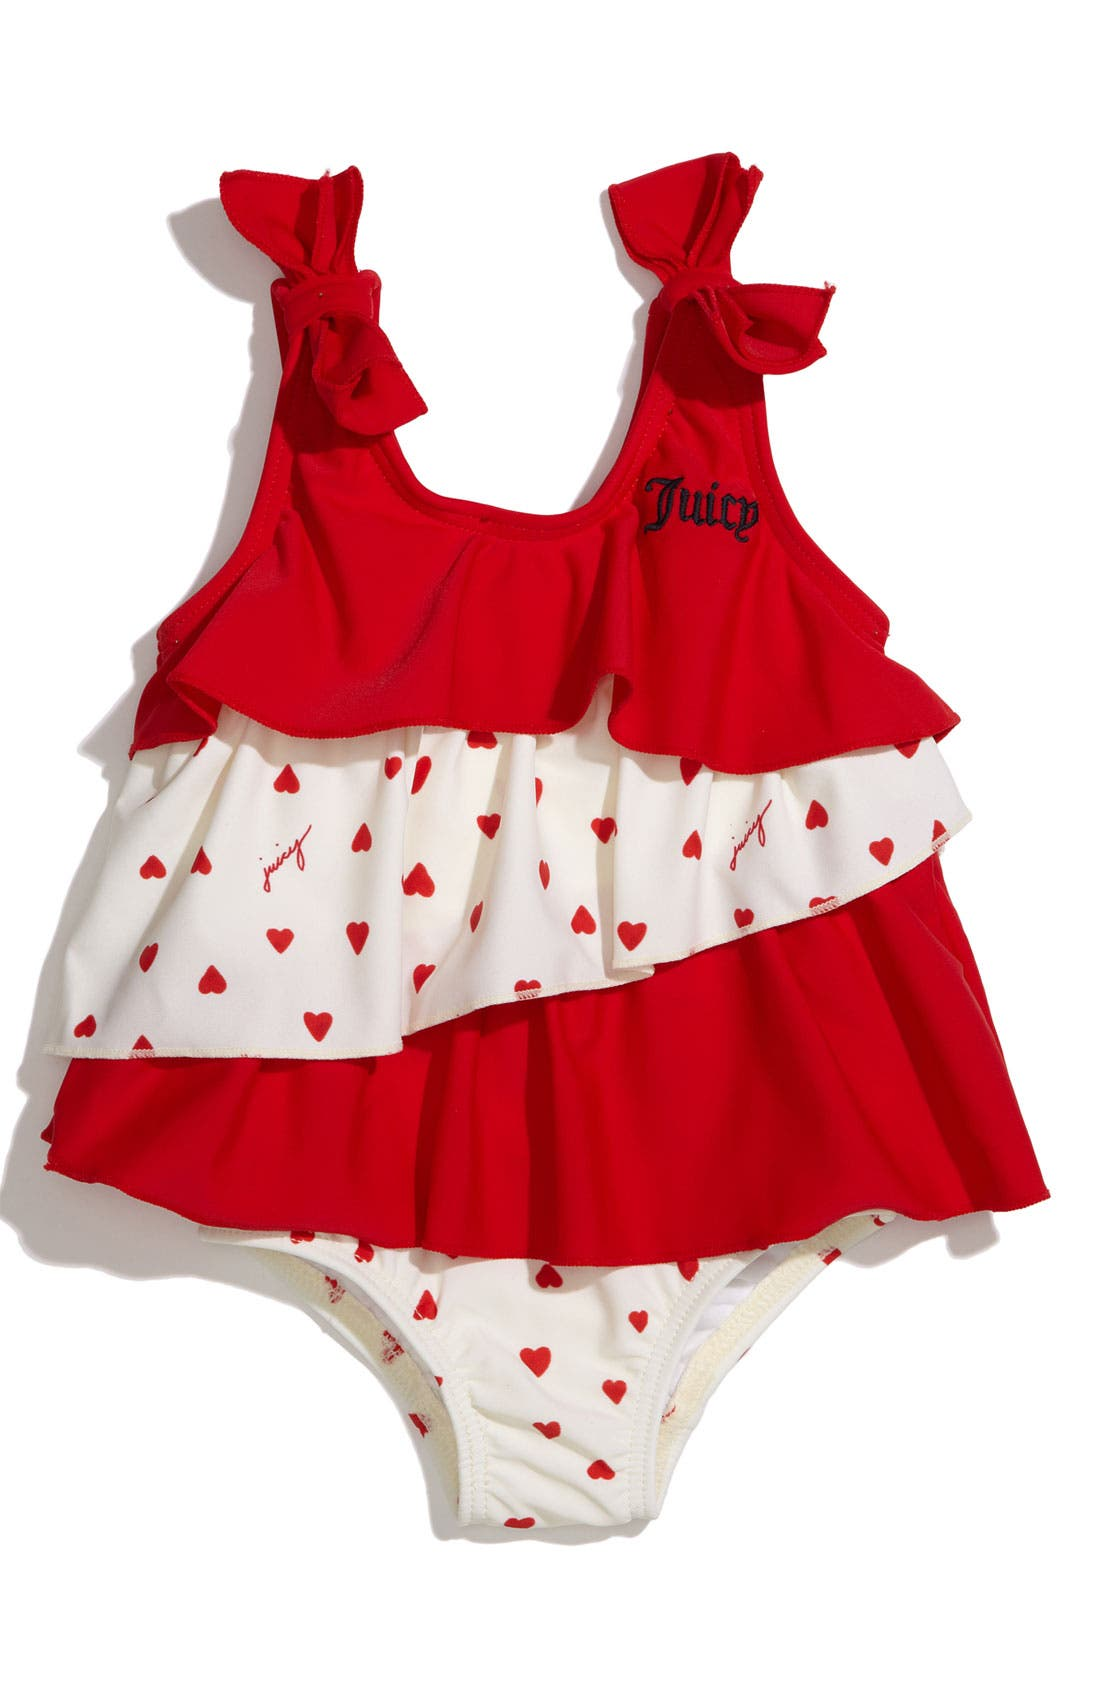 Main Image - Juicy Couture One Piece Swimsuit (Infant)